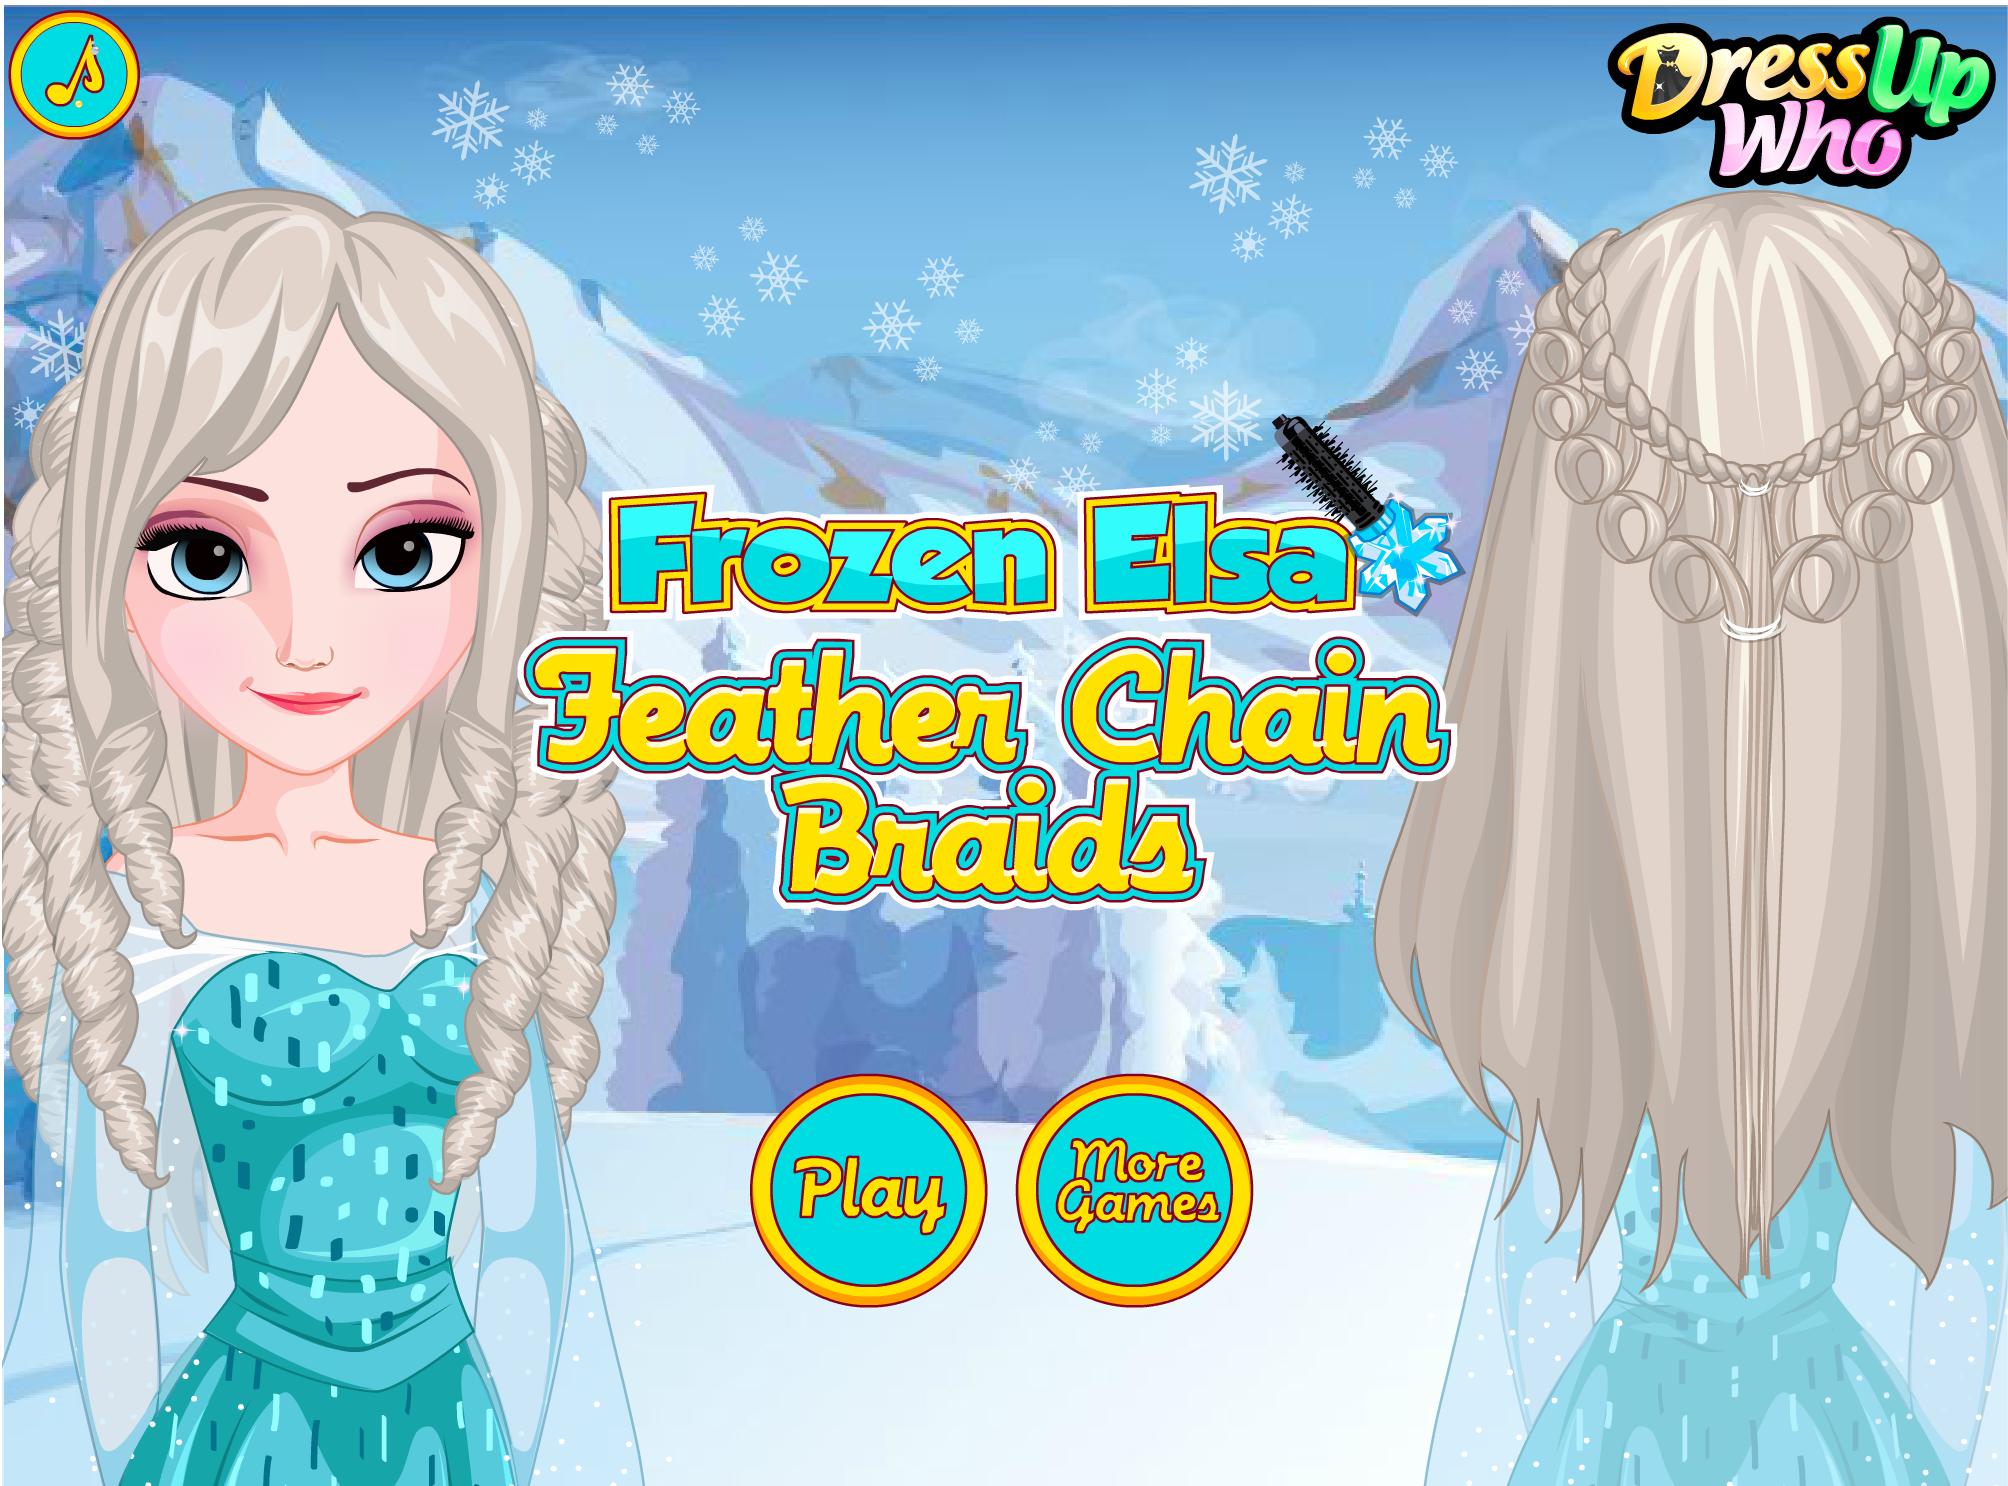 Frozen Elsa Feather Chain Braids! #frozen #elsa #hairstyles #hair